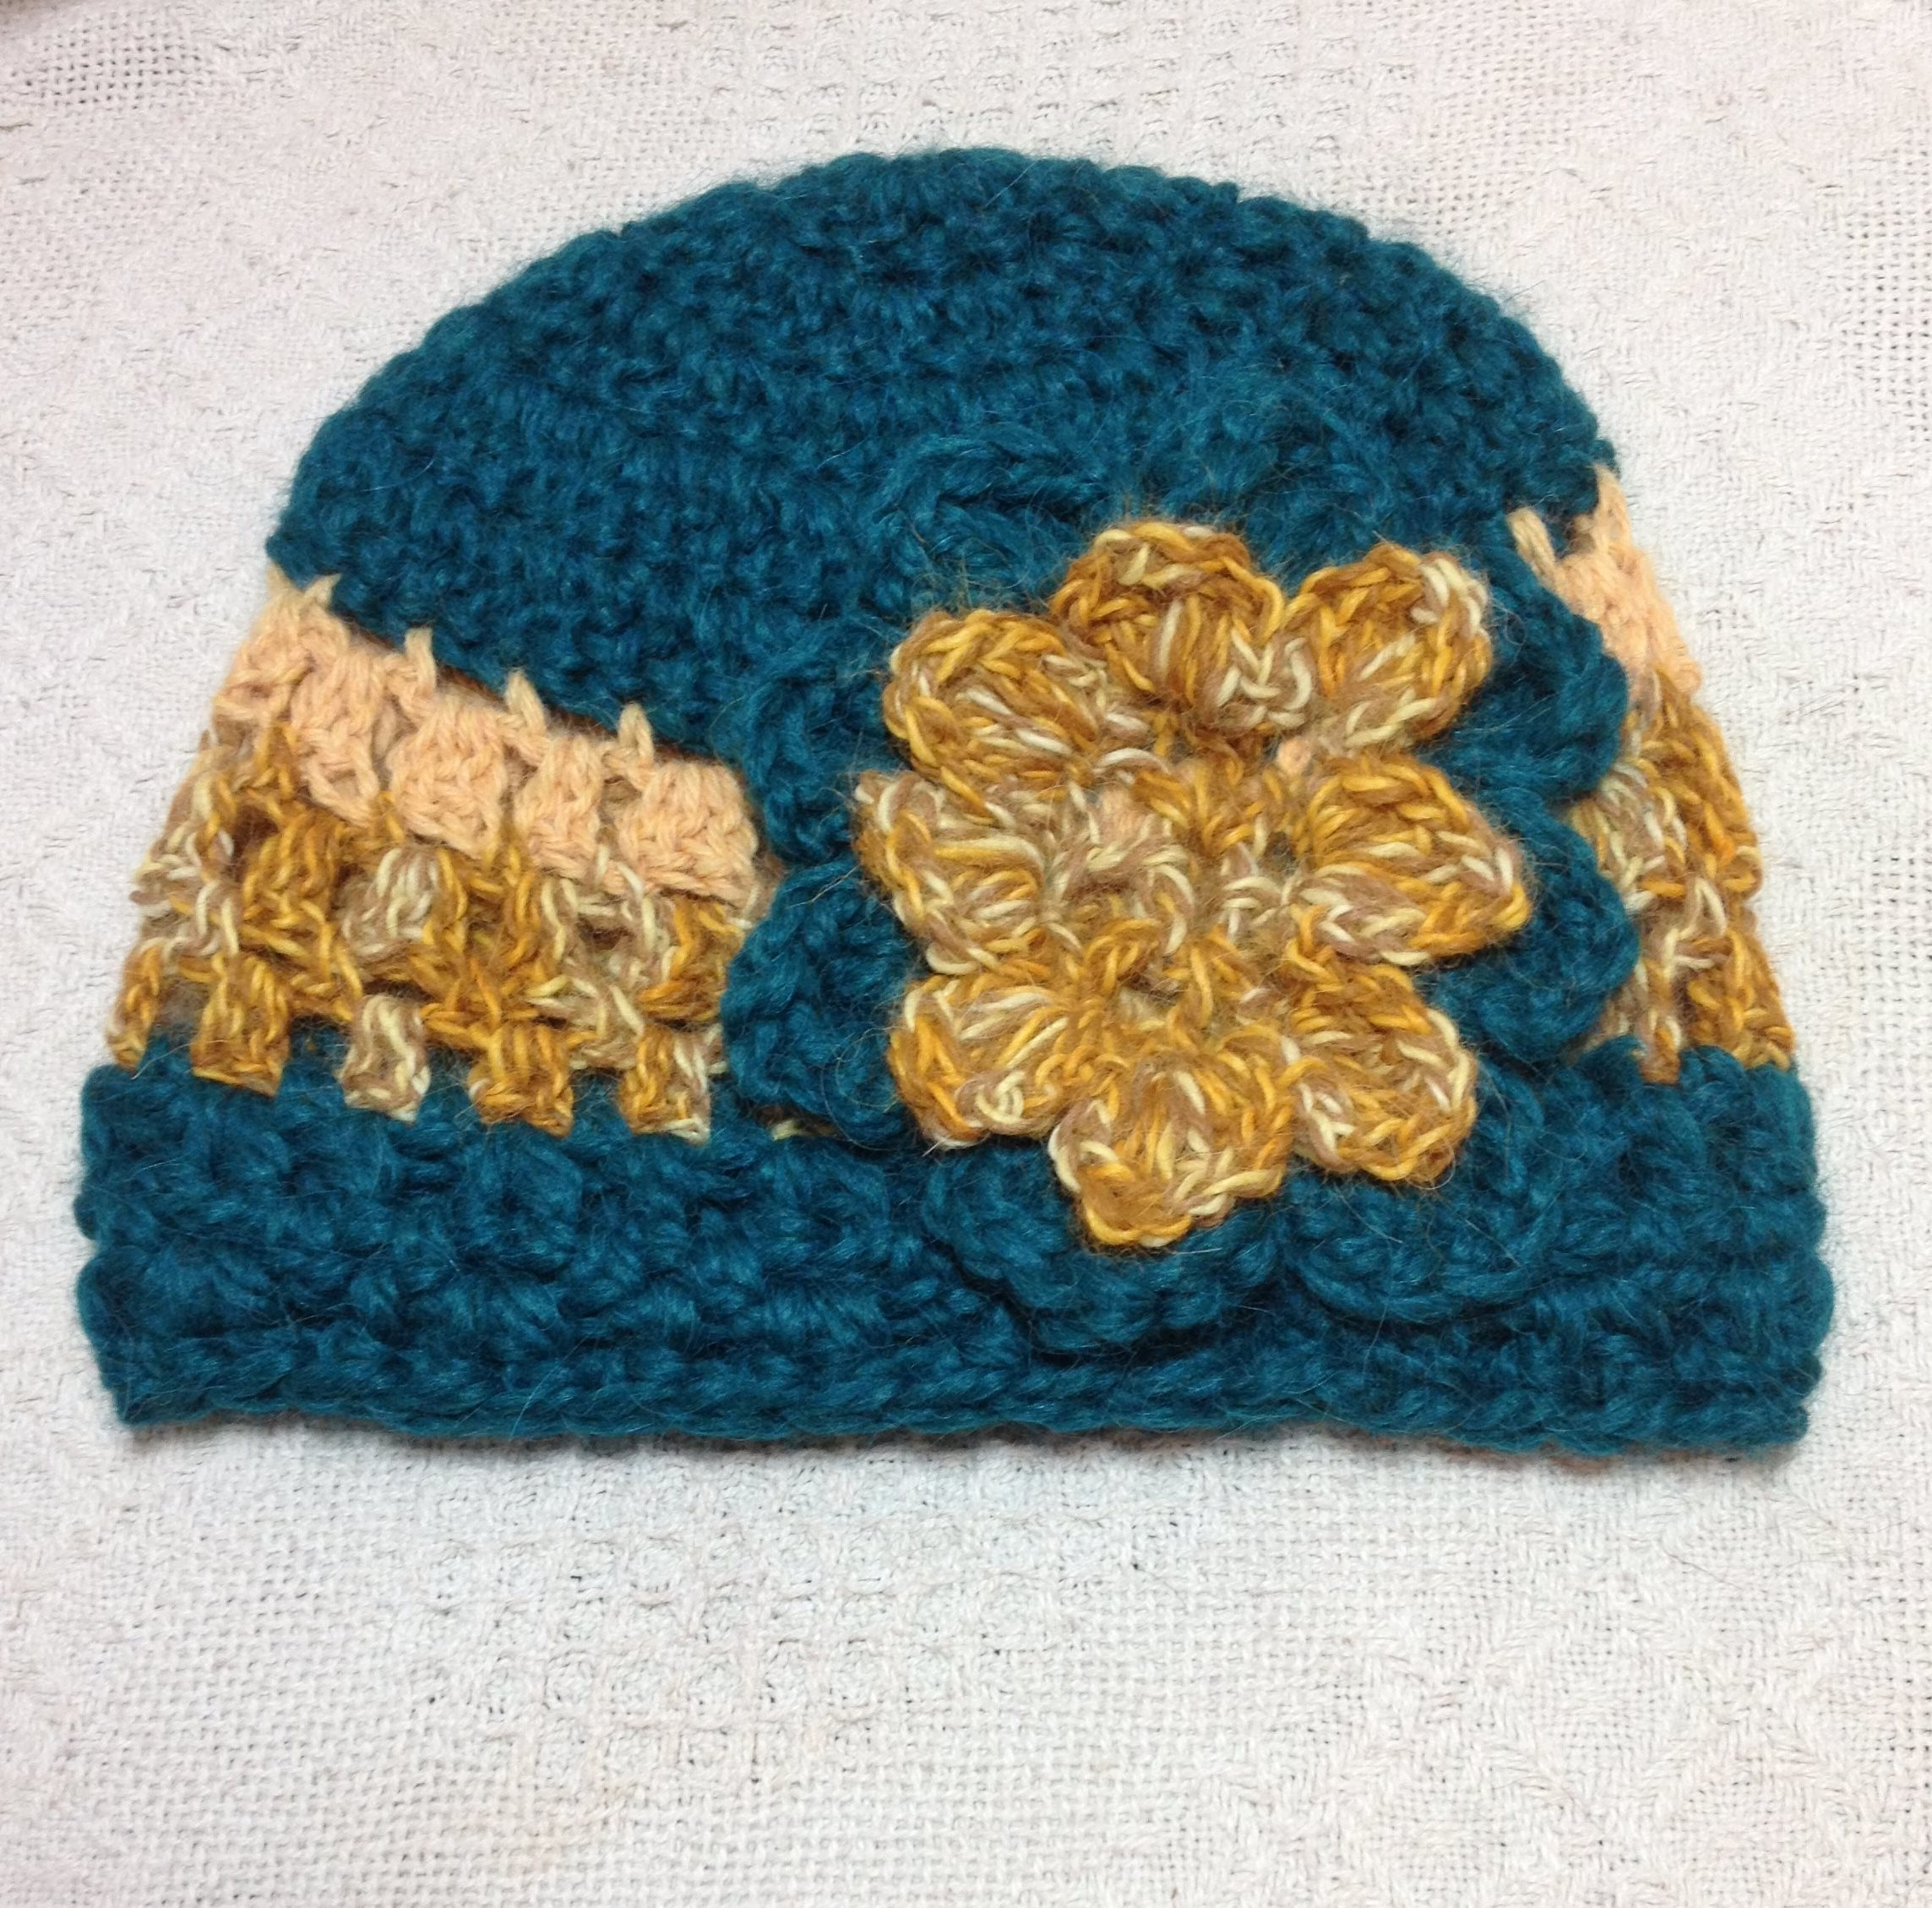 Alpaca Hat - Green, Gold, with Flower 17795